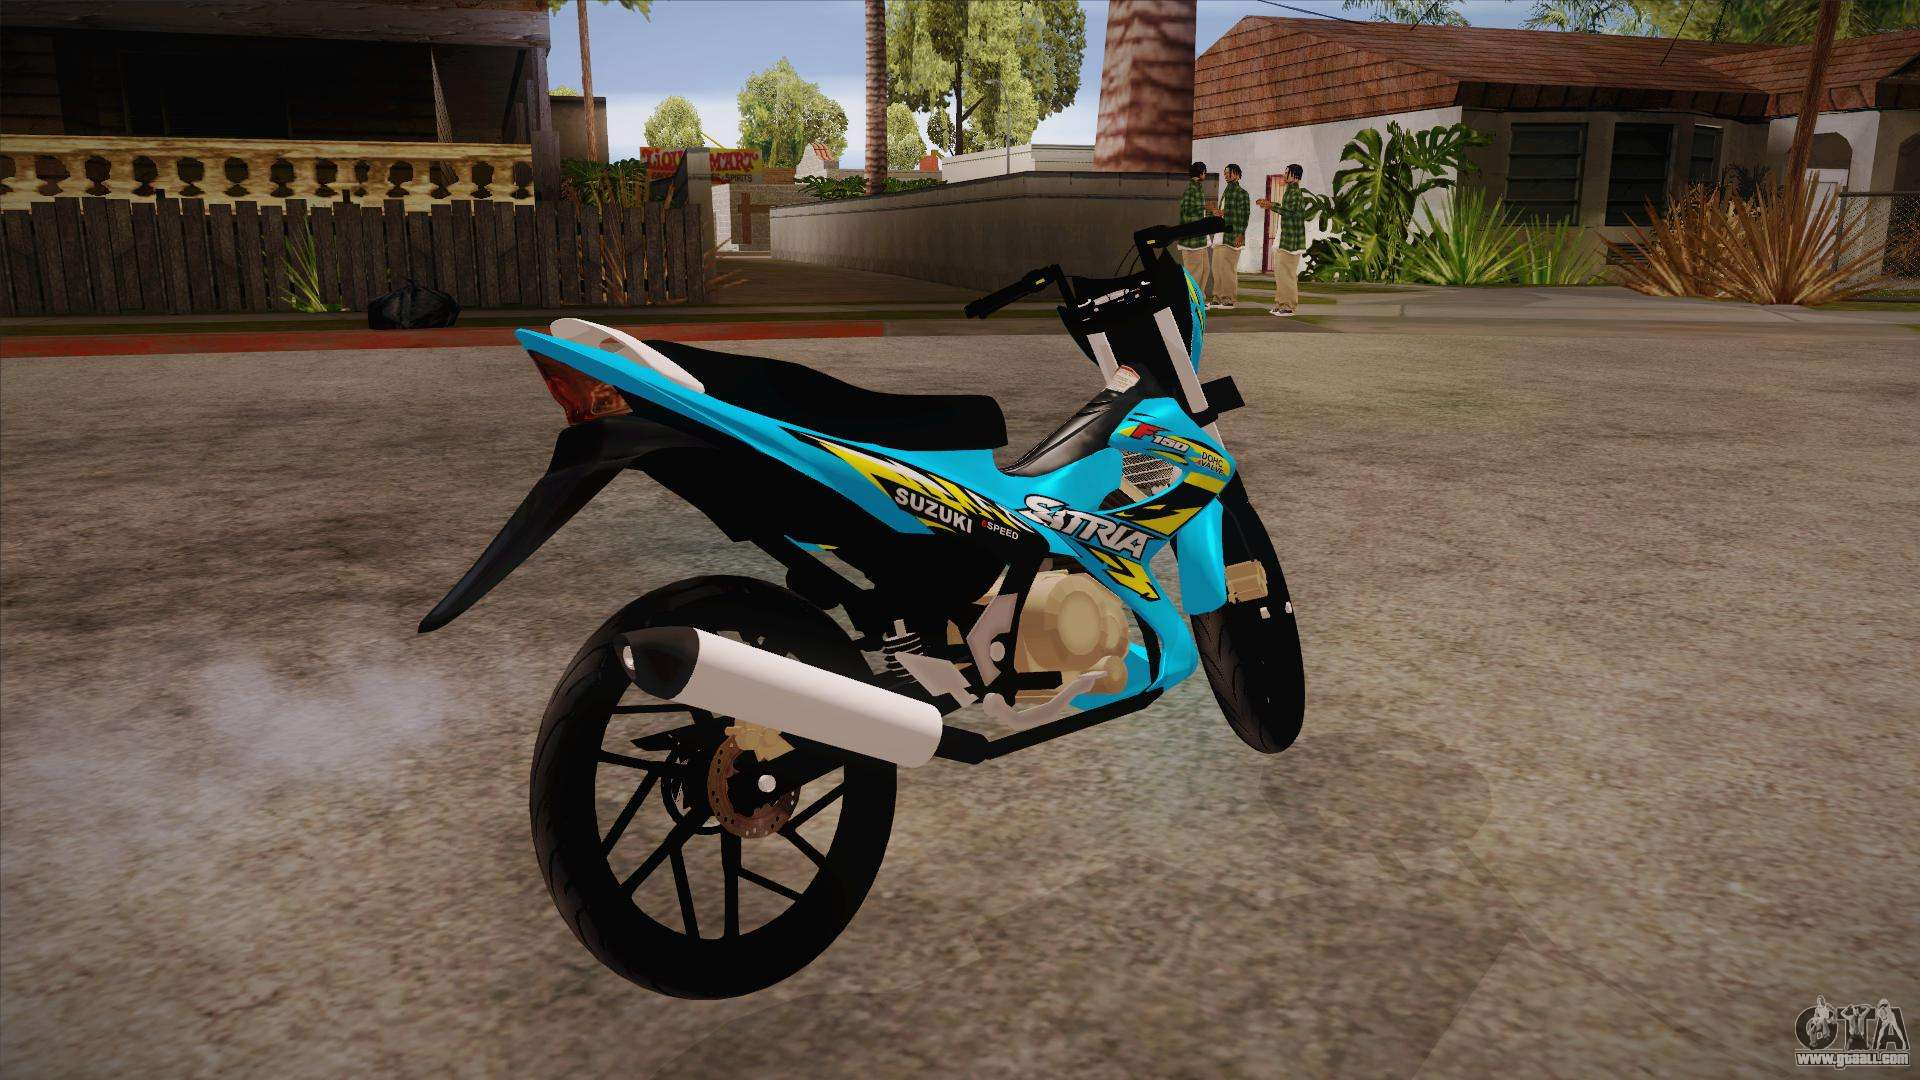 Suzuki Satria F150 2013 For Gta San Andreas All New